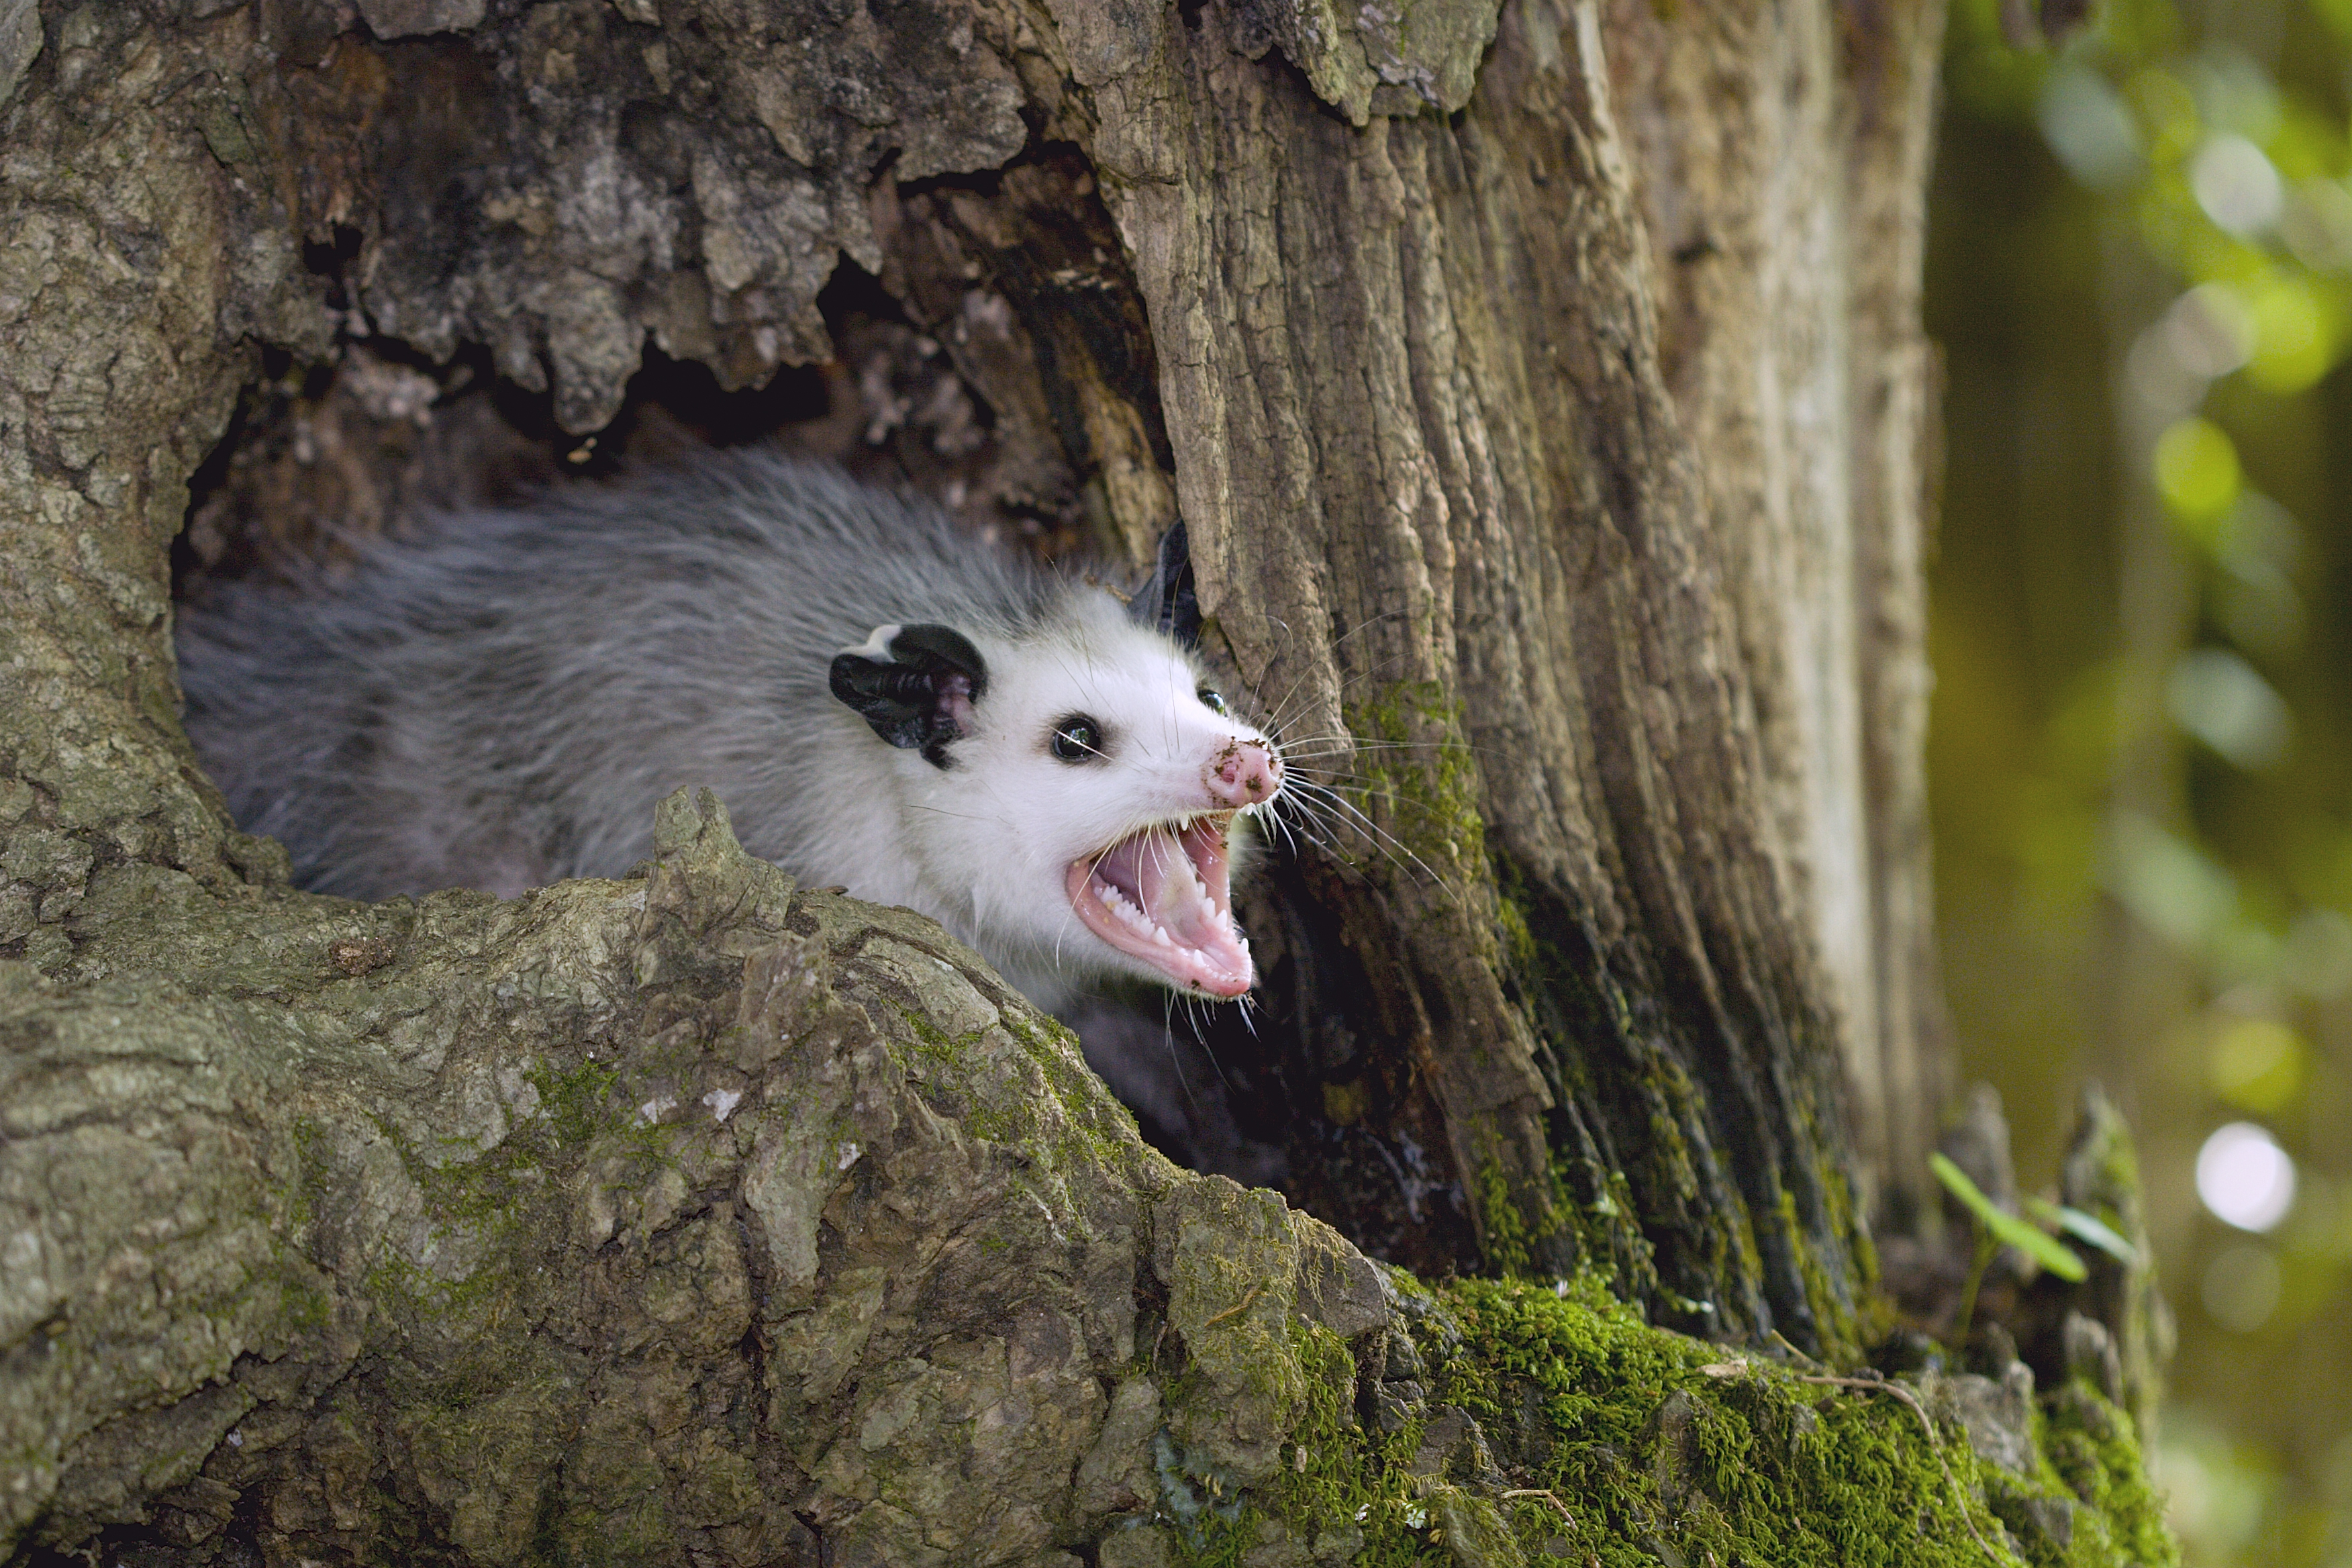 How To Get Rid Of A Possum In Your Garage homemade natural possum repellent | home guides | sf gate